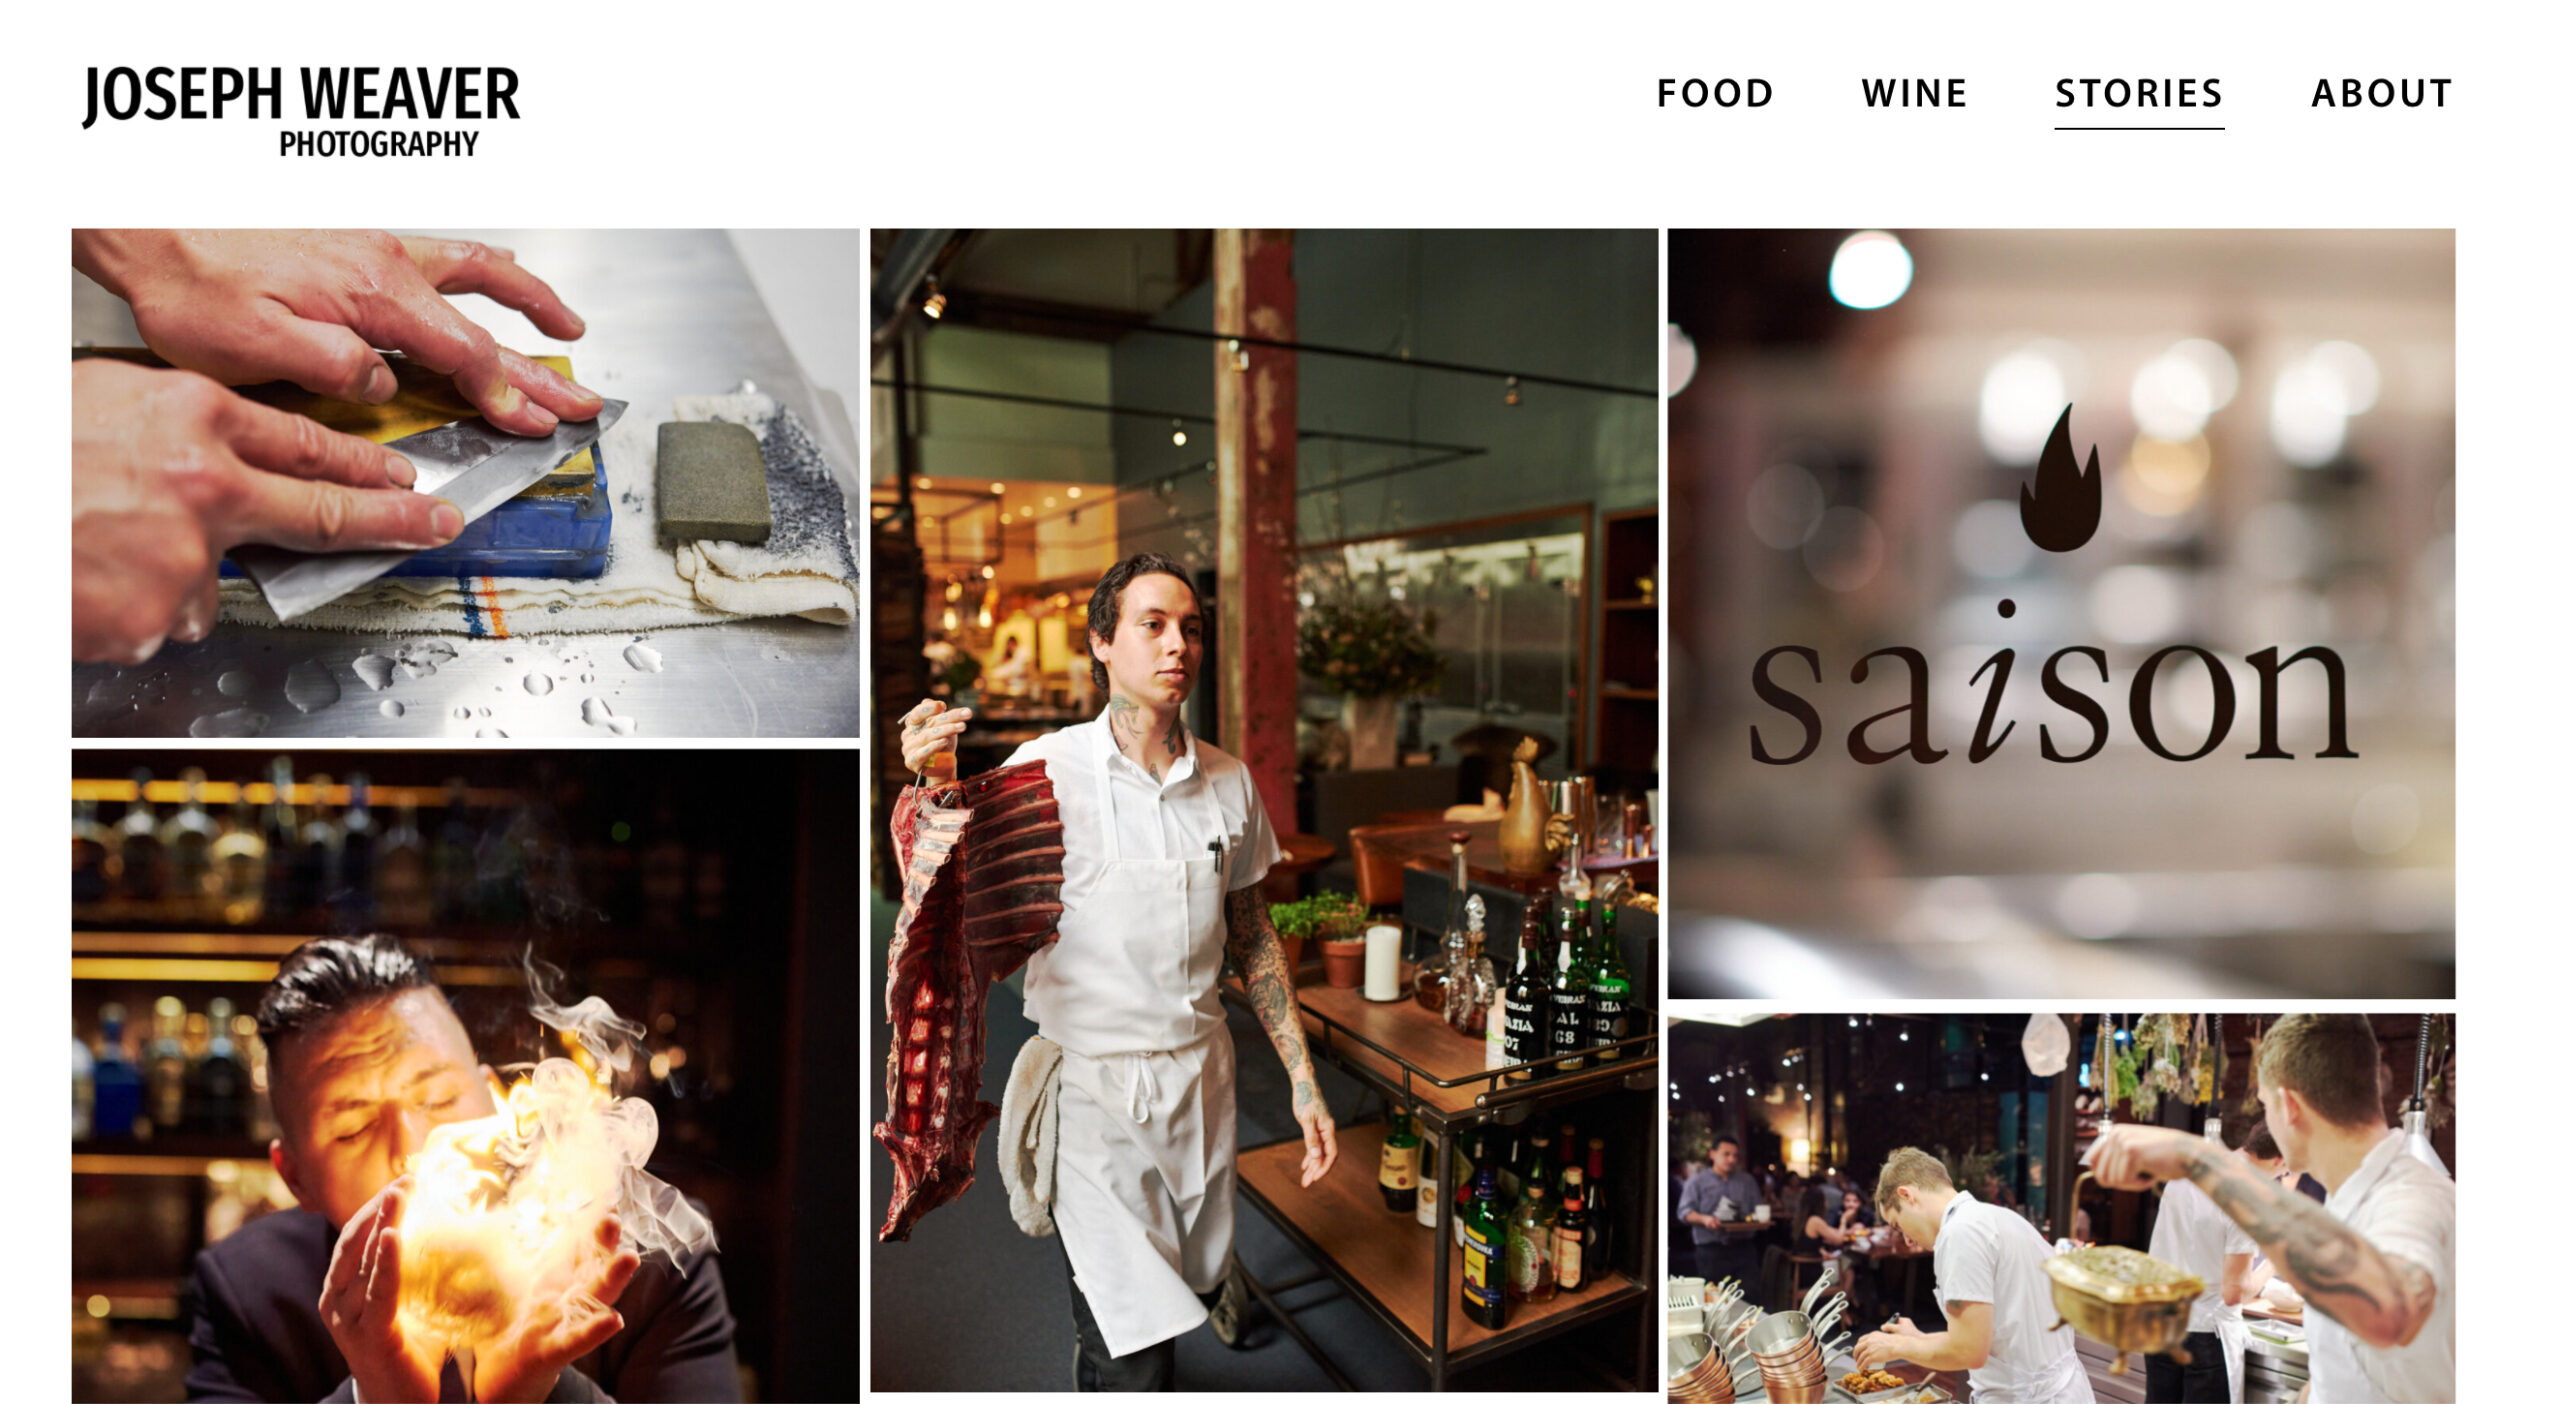 Joe's new website, which includes imagery for SF restaurant Saison